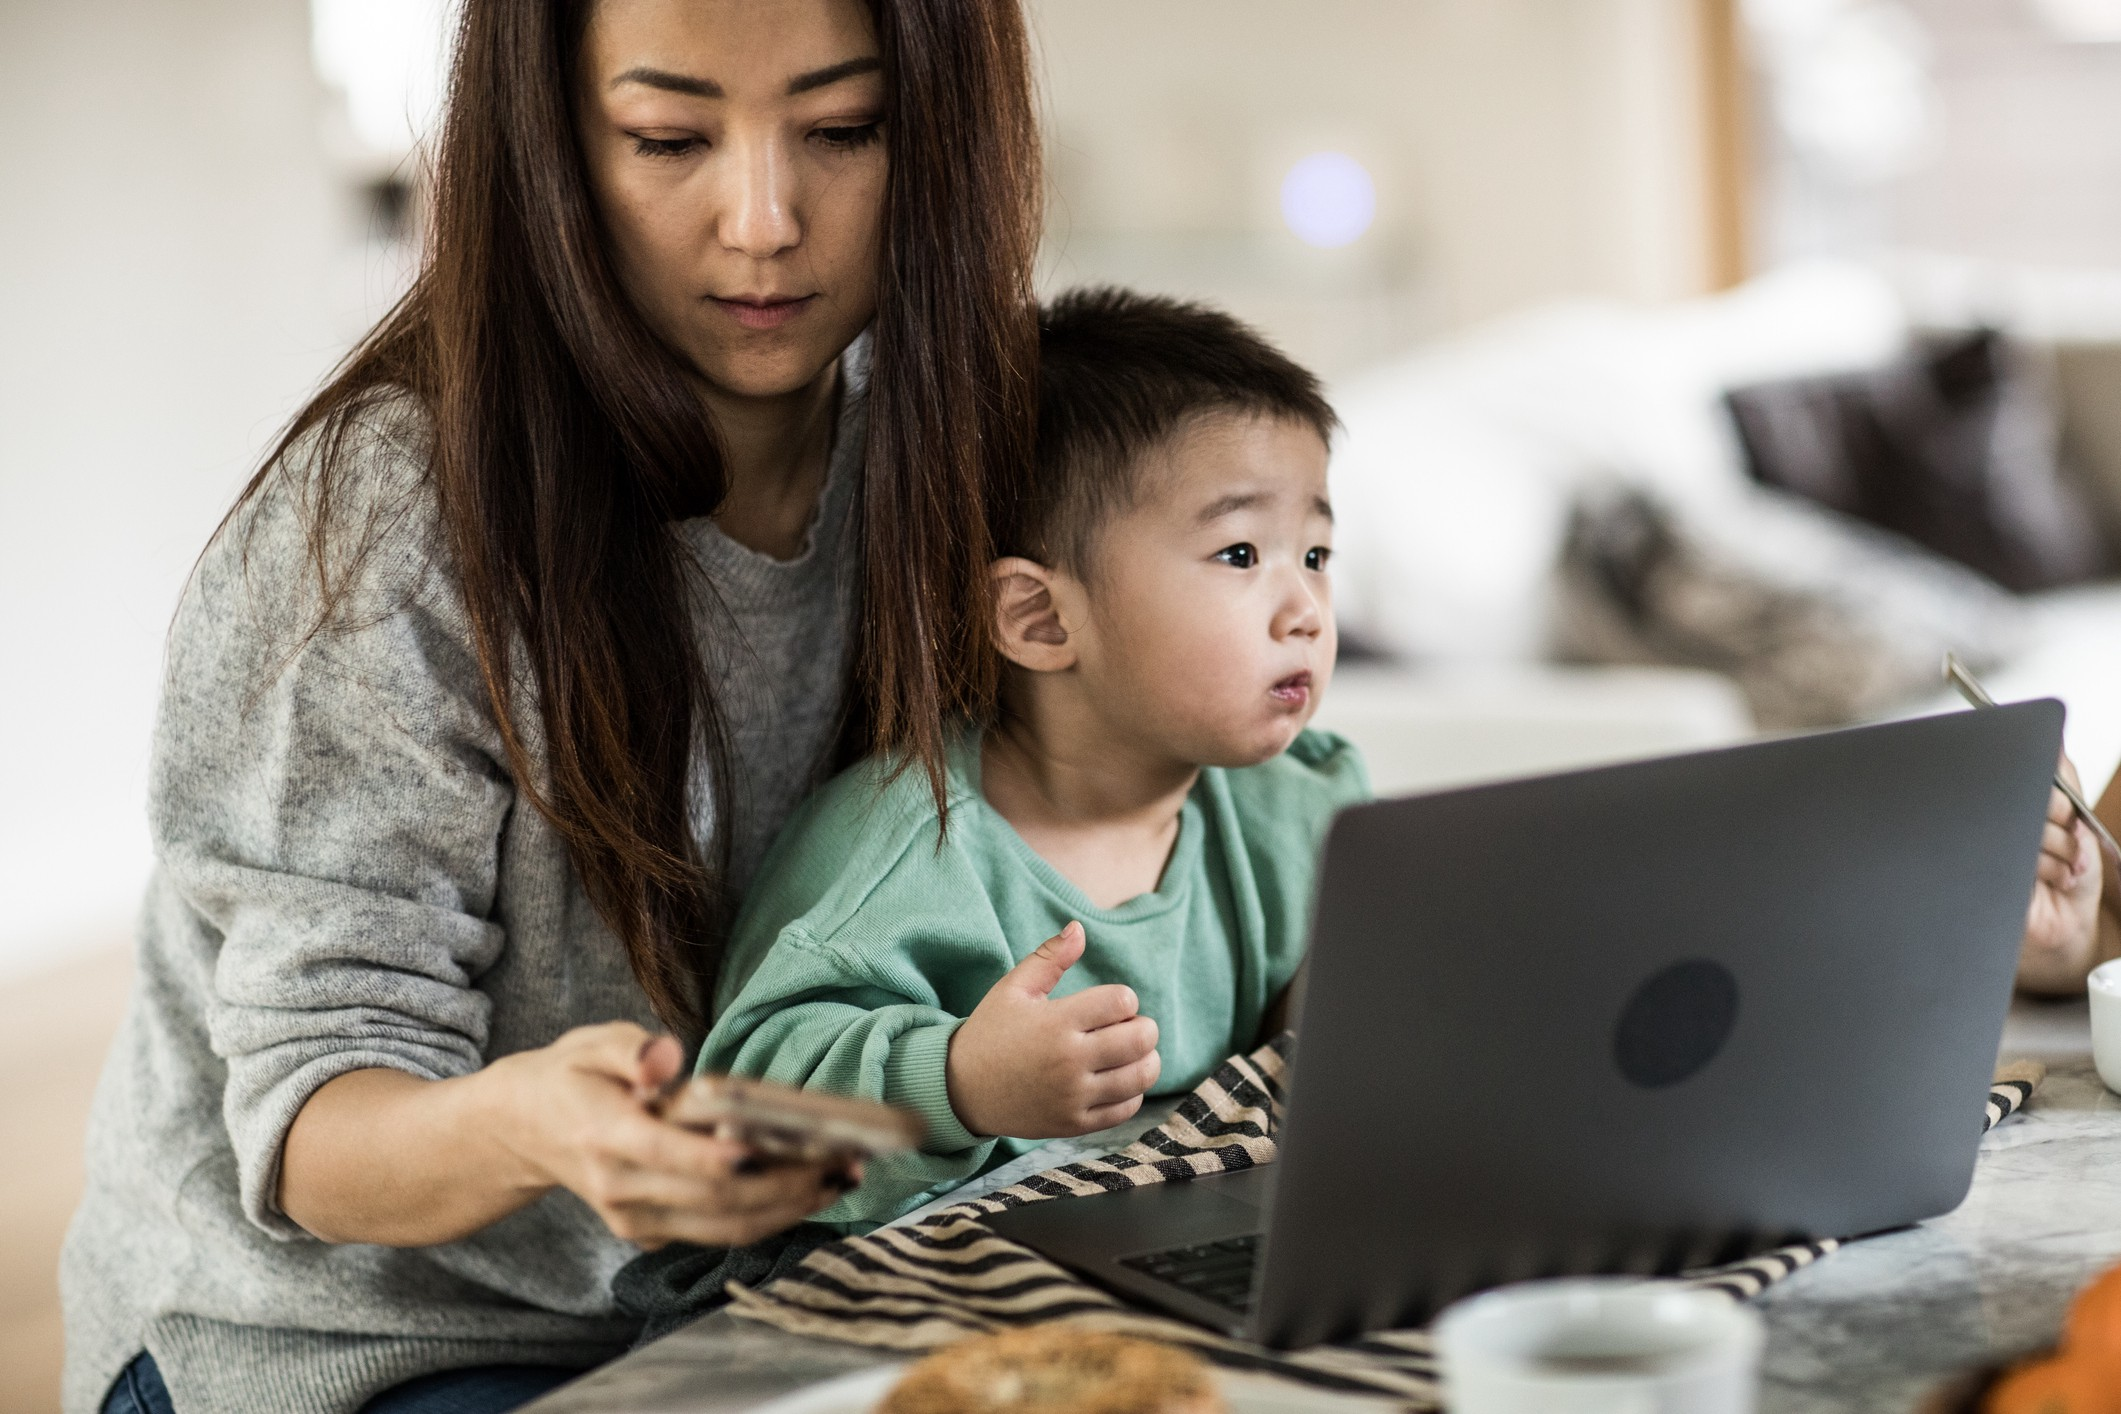 A photo of a mom working on her laptop while her son sits in her lap, she looks busy and tired.